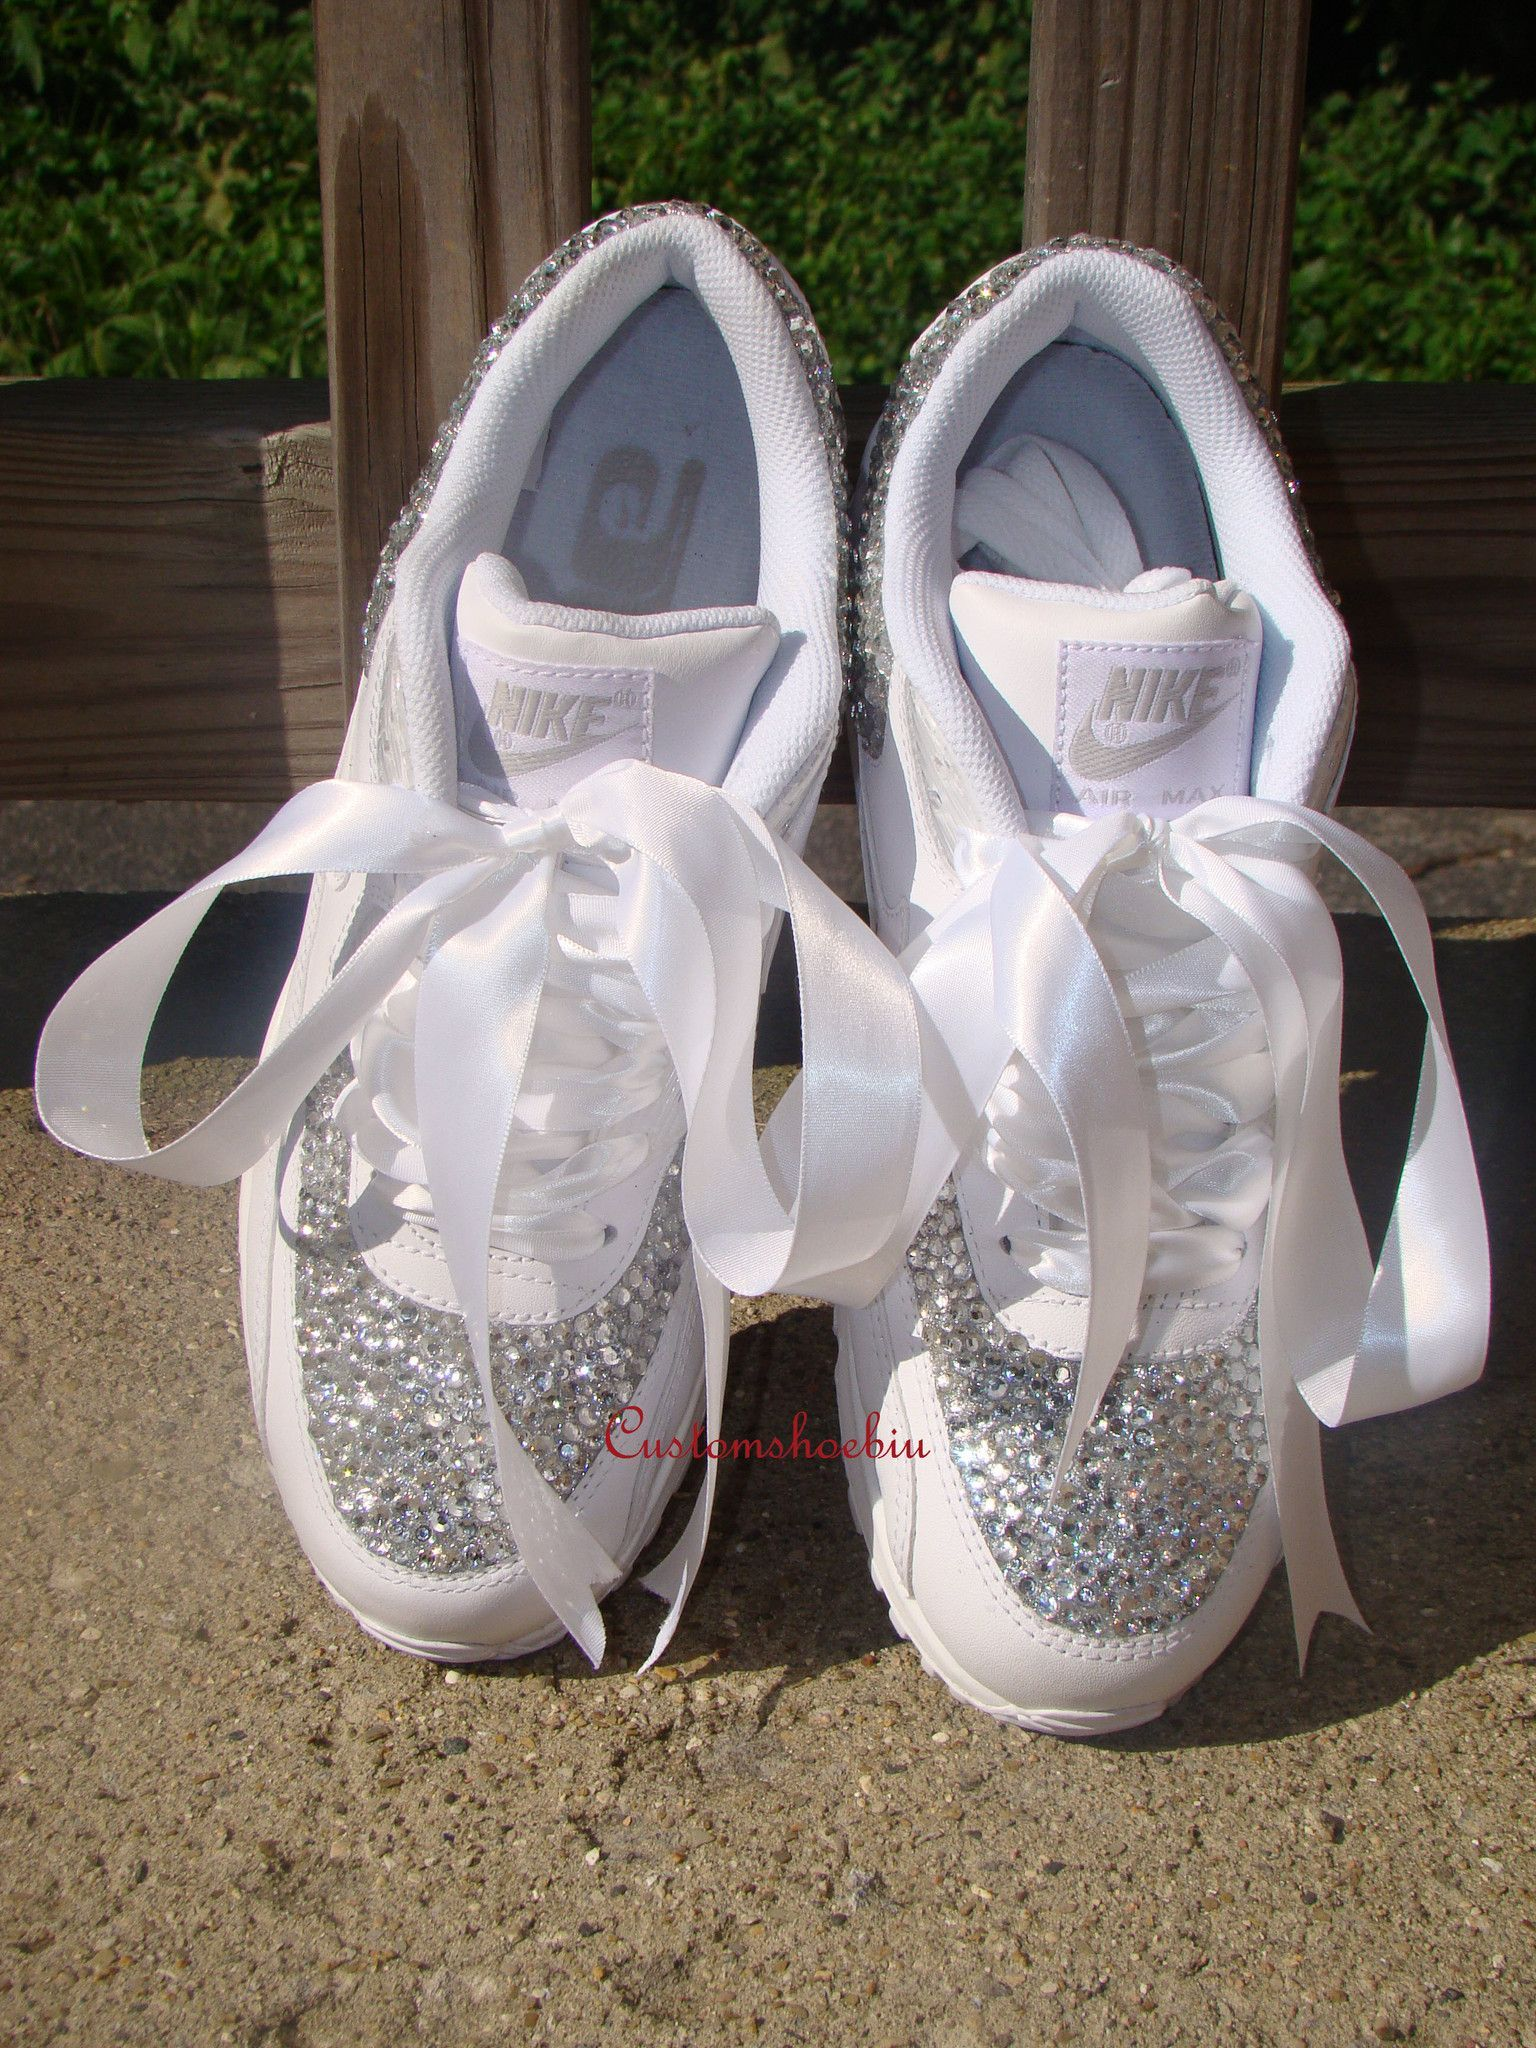 Custom Bling Rhinestone Nike Air Max 90 with White Ribbon ebc9faa65